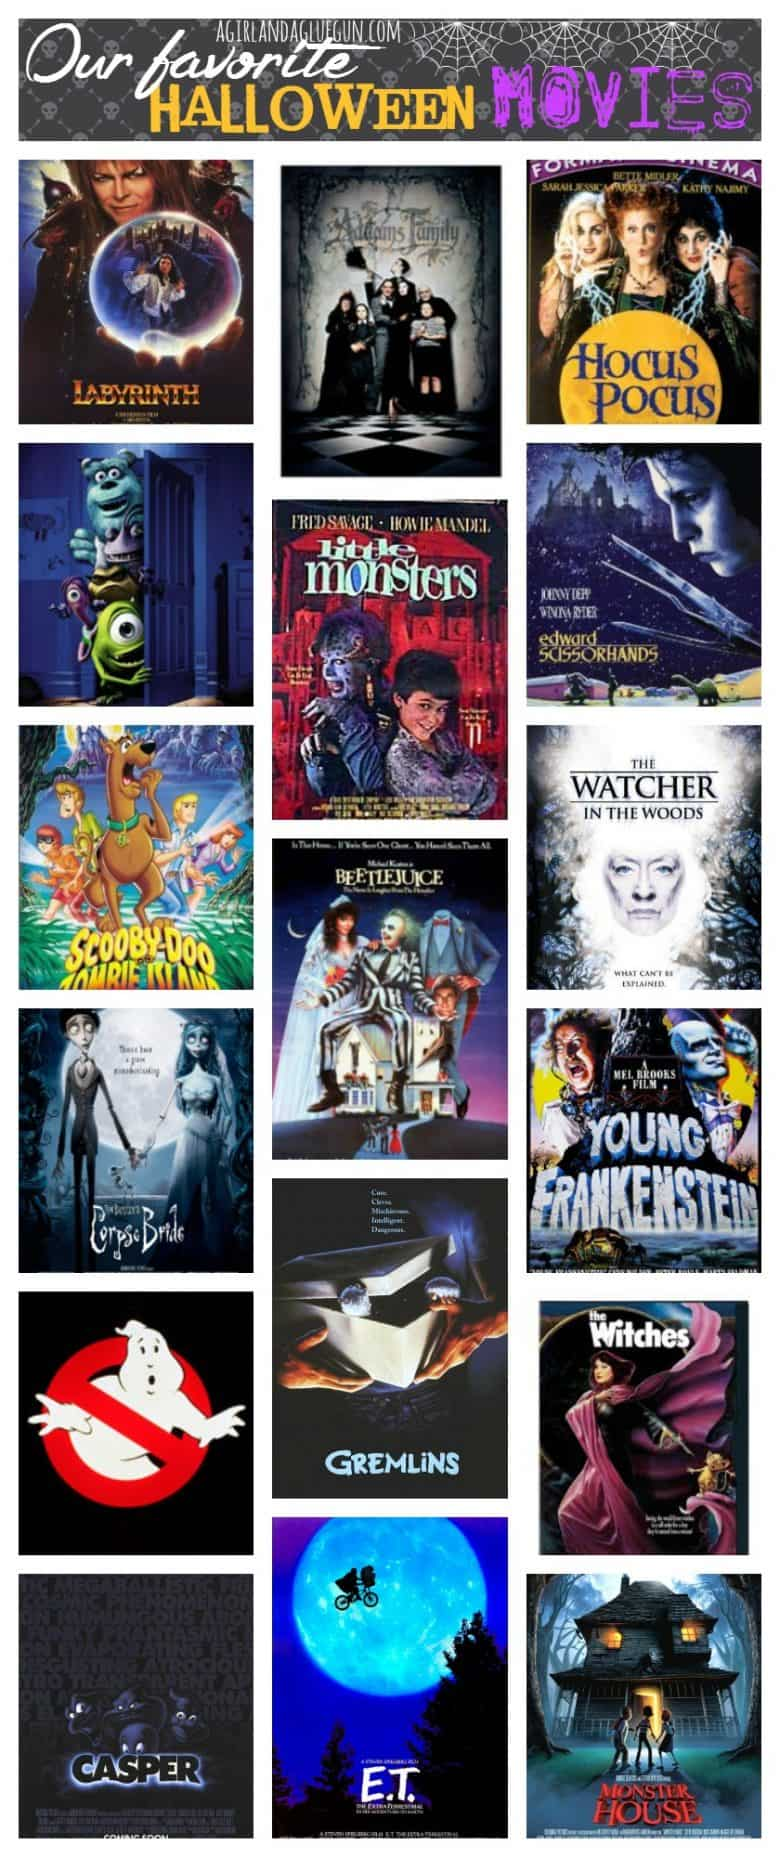 the best roundup of halloween movies for your family!!!